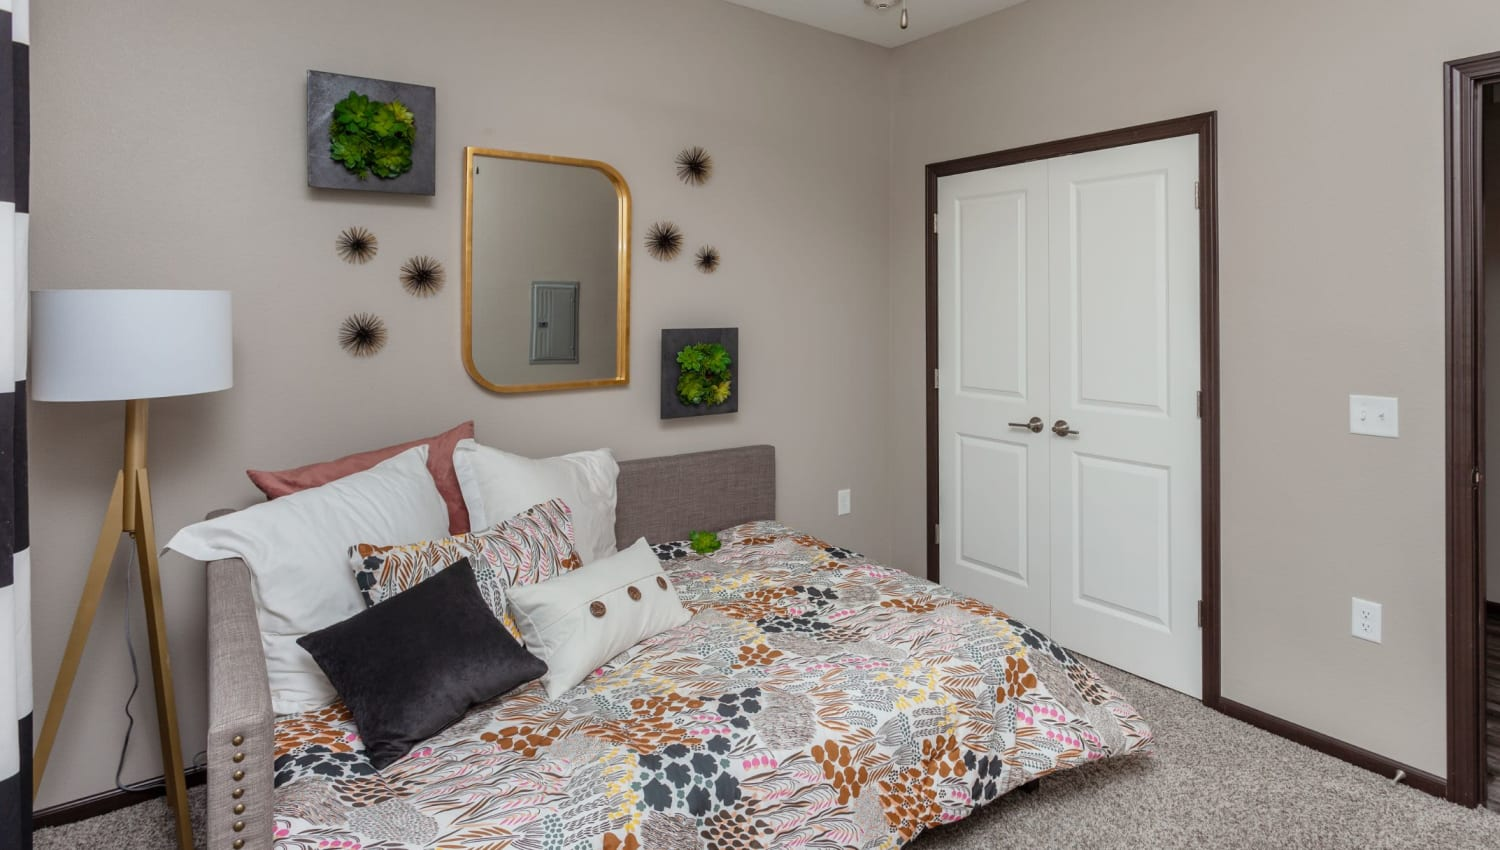 Bedroom with a ceiling fan at Autumn Ridge in Waukee, Iowa